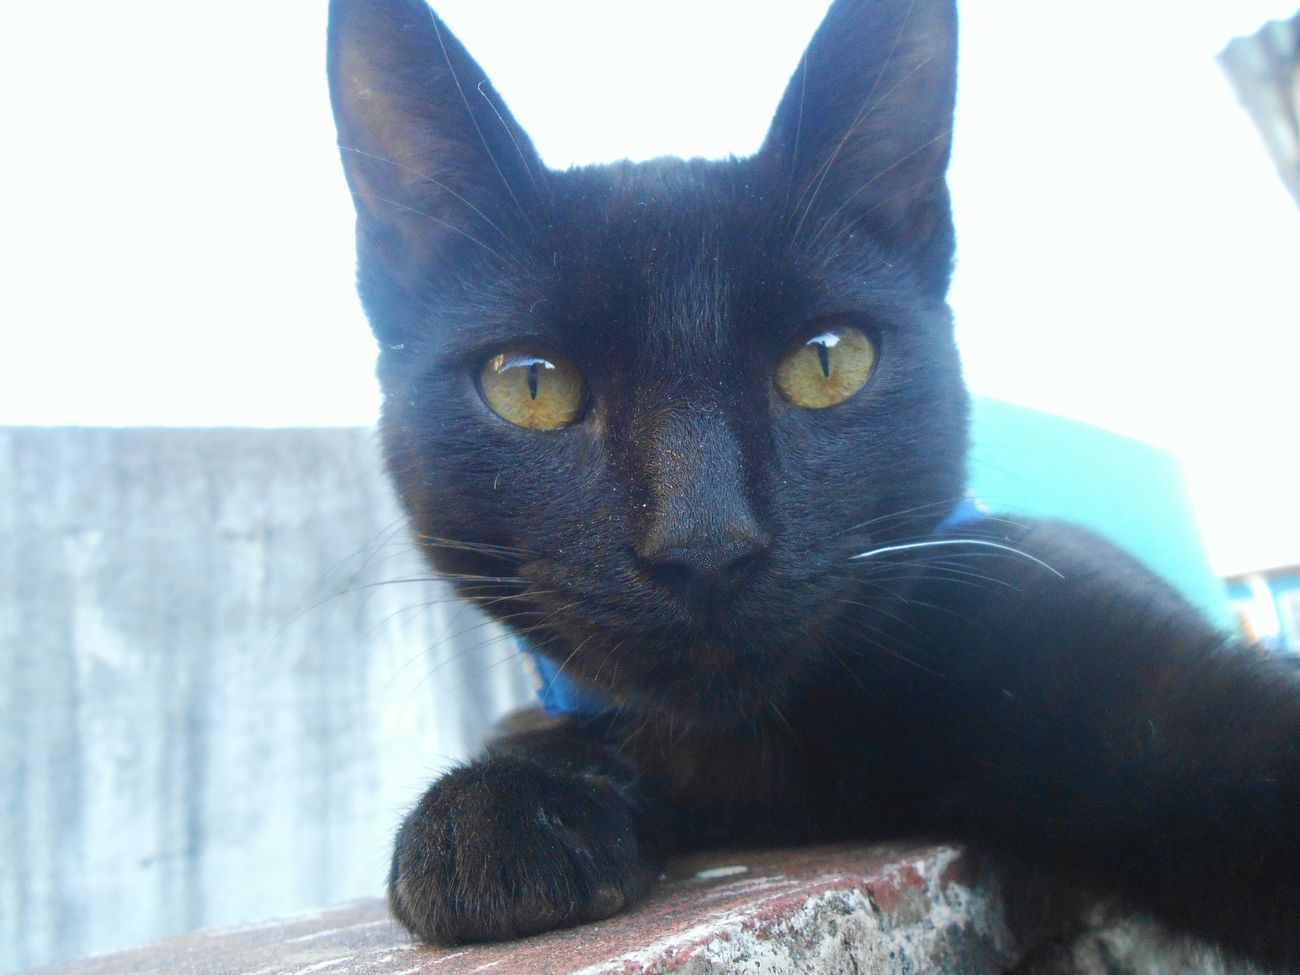 Cat selfie. One Animal Looking At Camera Feline Close-up Portrait Cat Catslife Cat Playing Nikonphotography Cats Cat Photography Blackcats Catphotography Catphoto Cats Of EyeEm Capture The Moment Cat Lovers Nikon Photography Black Cat BLackCat Nikon Sunlight Domestic Animals Day Pets